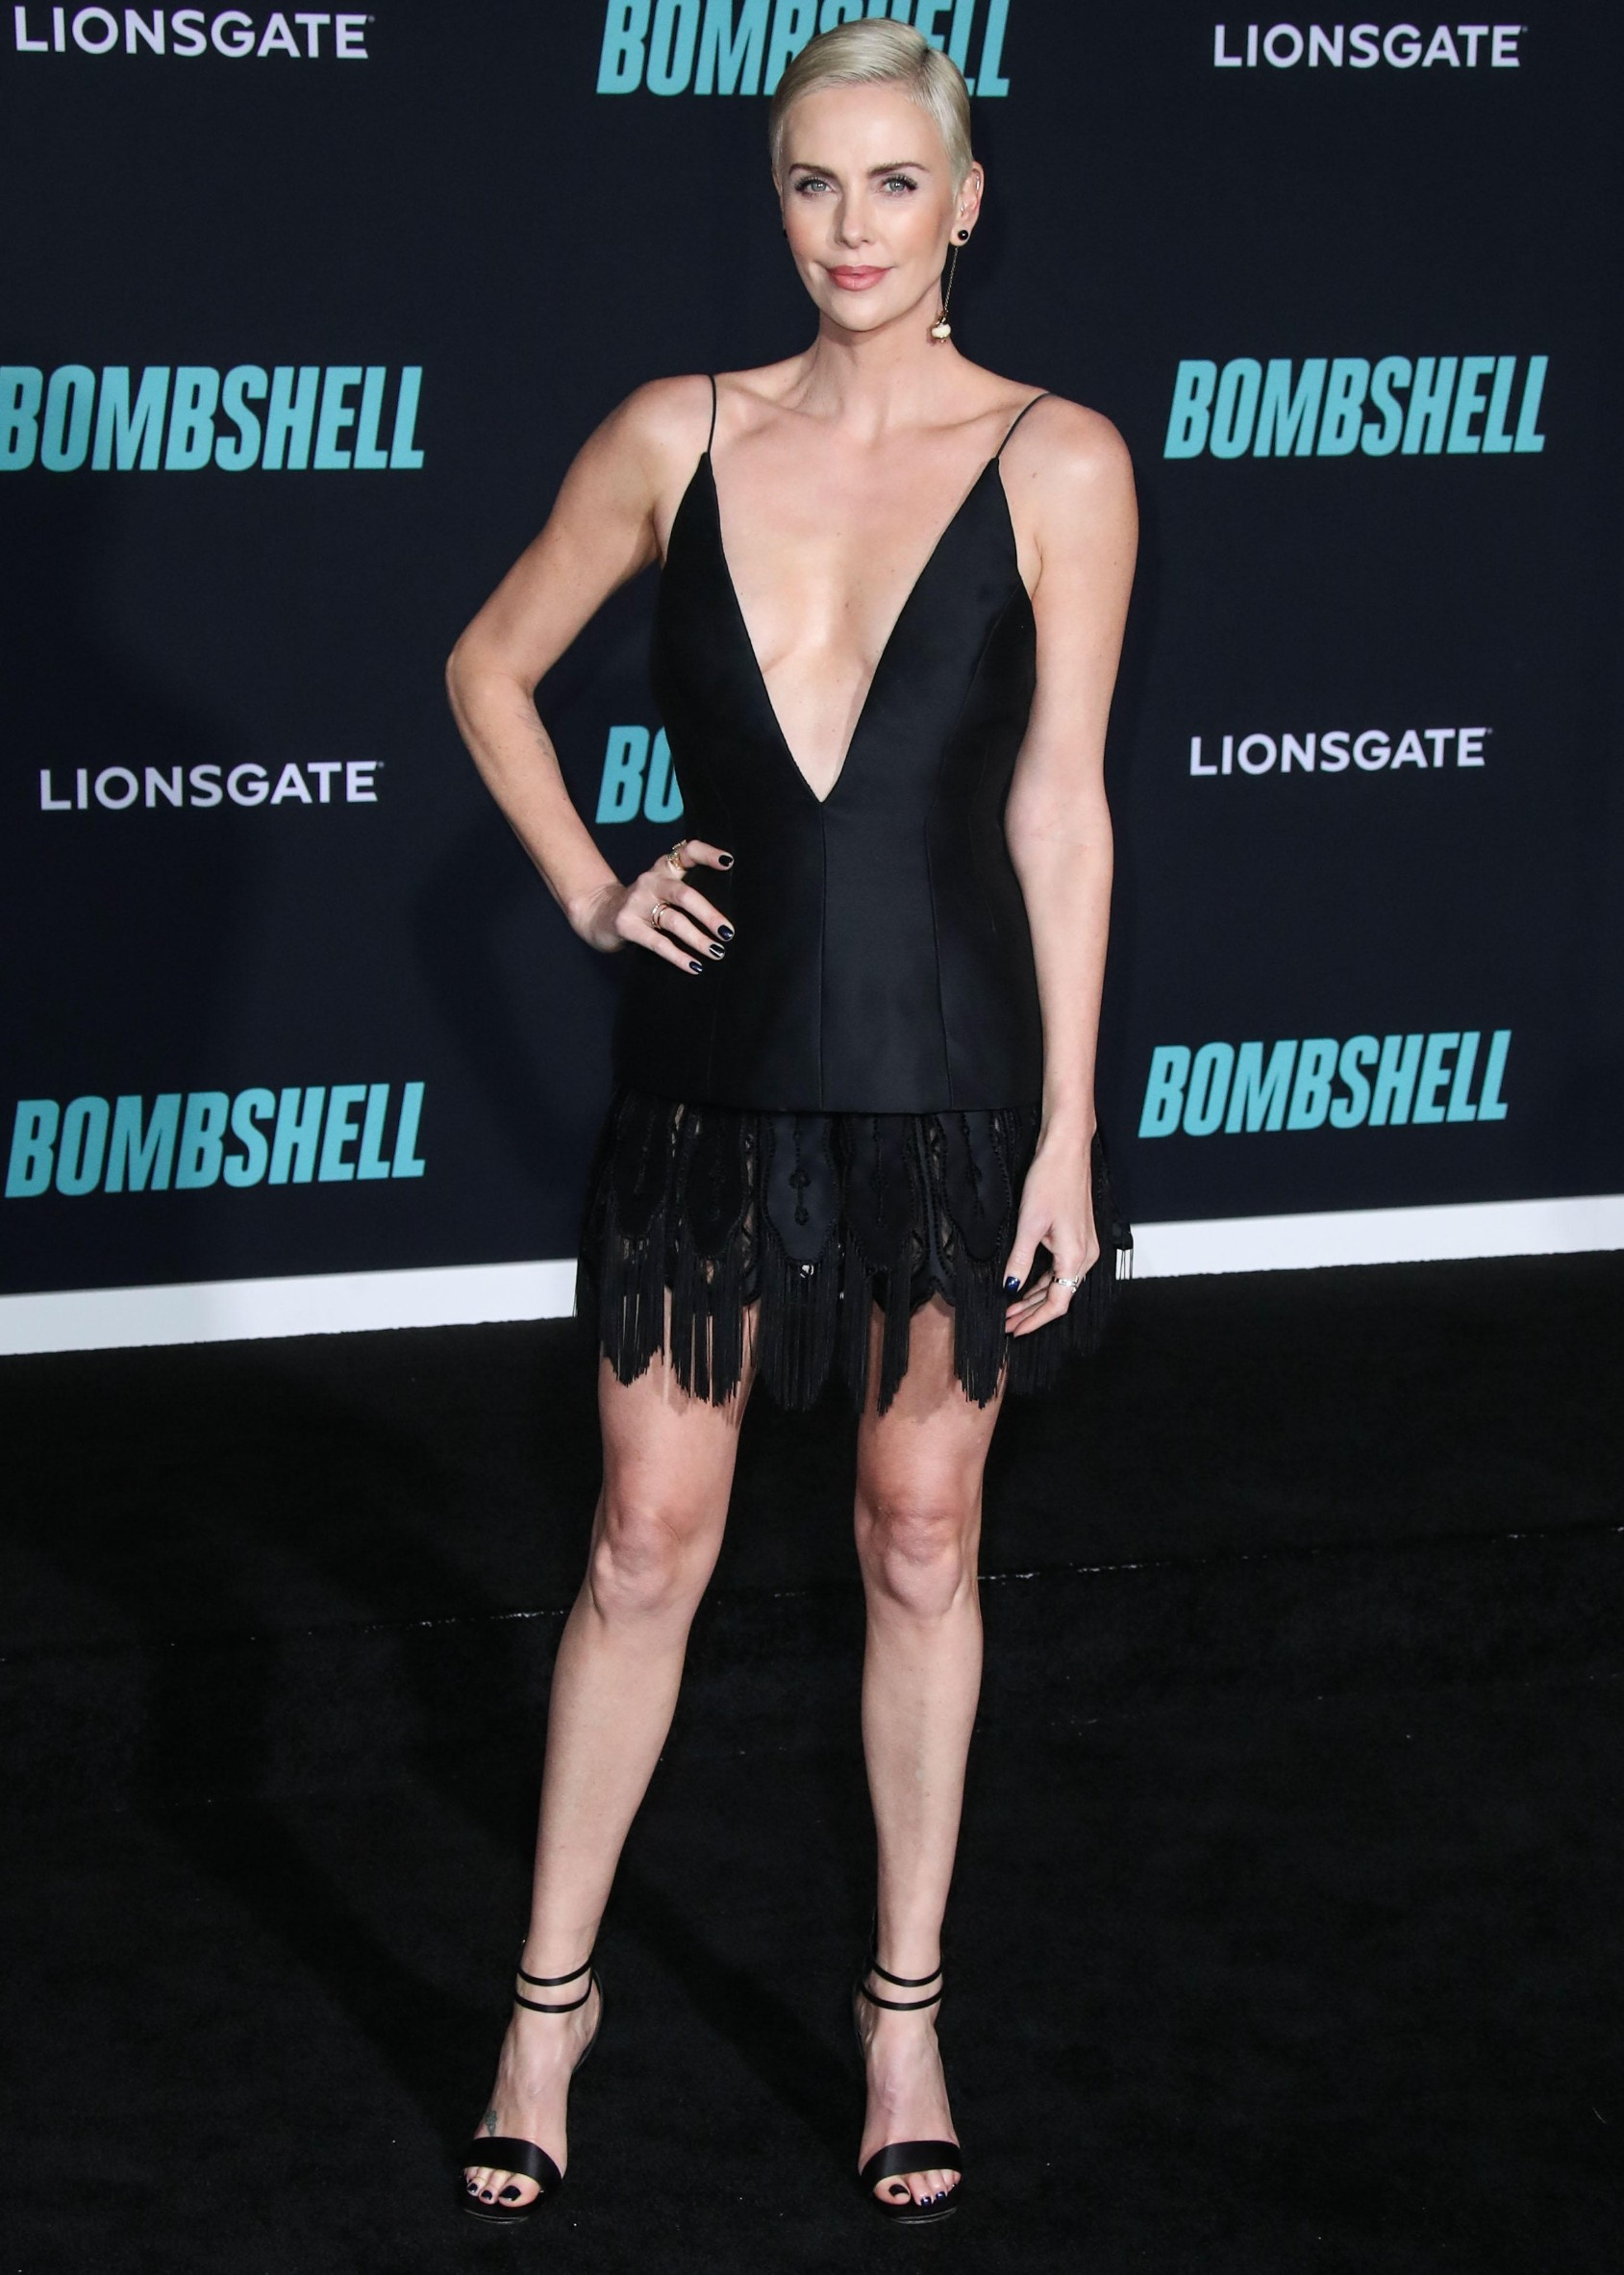 WESTWOOD, LOS ANGELES, CALIFORNIA, USA - DECEMBER 10: Actress Charlize Theron wearing Custom Christian Dior with Retrouvai and EF Collection rings arrives at the Los Angeles Special Screening Of Liongate's 'Bombshell' held at the Regency Village Theatre on December 10, 2019 in Westwood, Los Angeles, California, United States., Image: 487573670, License: Rights-managed, Restrictions: , Model Release: no, Credit line: ImagePressAgency/face to face / Face to Face / Profimedia